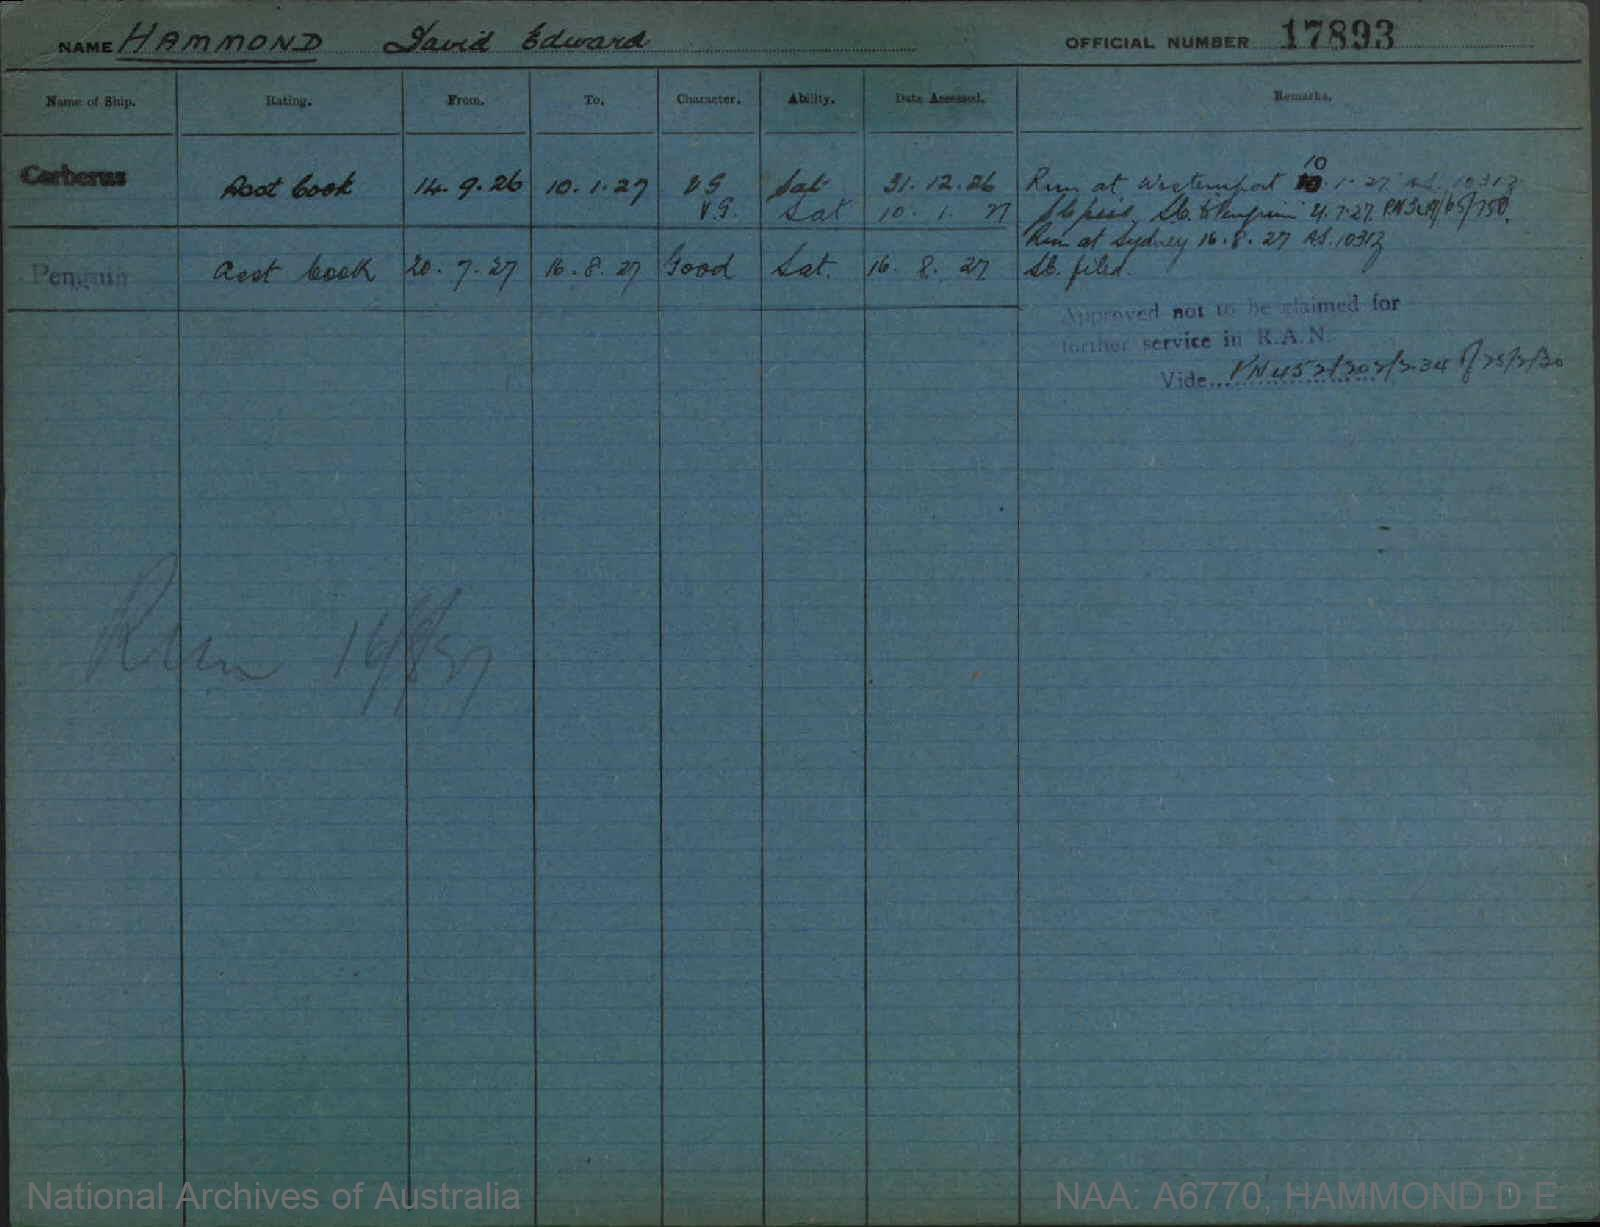 HAMMOND DAVID EDWARD : Service Number - 17893 : Date of birth - 25 Mar 1904 : Place of birth - SEMAPHORE SA : Place of enlistment - MELBOURNE : Next of Kin - HANORA